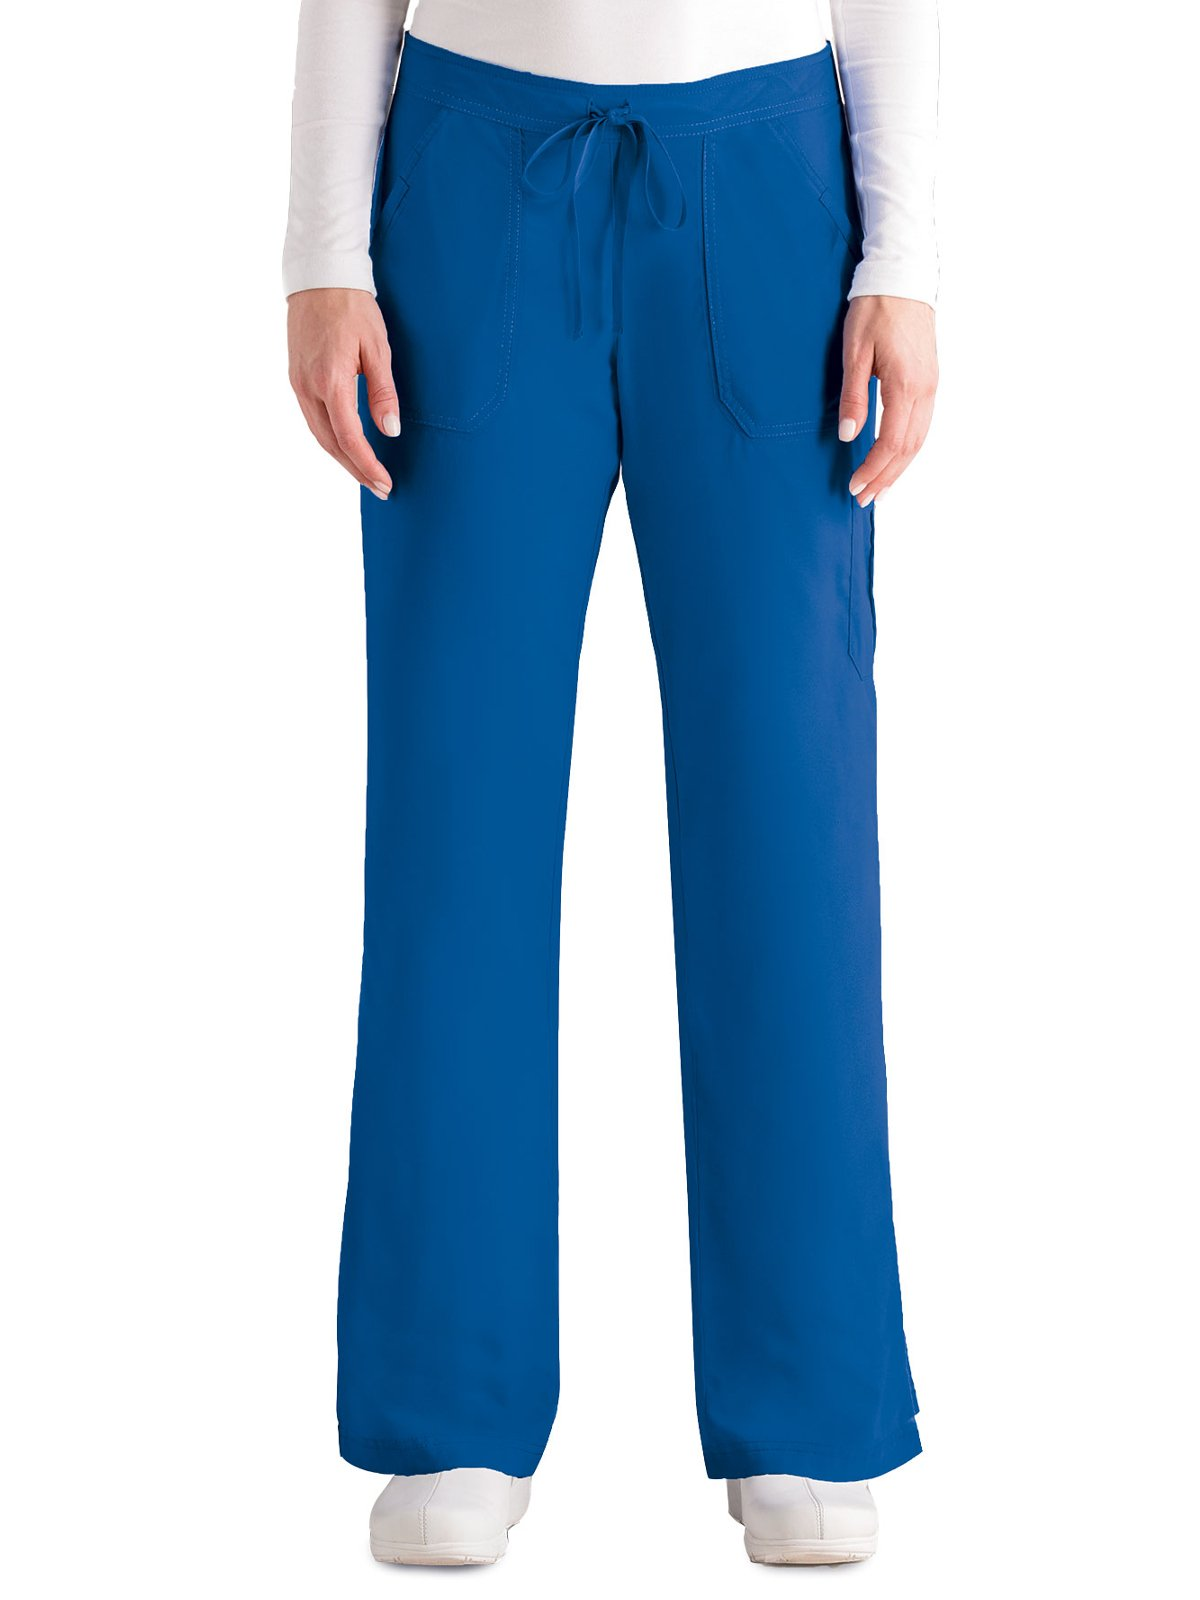 Grey's Anatomy Women's 4245 Junior Fit 4-Pocket Elastic Back Scrub Pants, New Royal, Medium/Petite